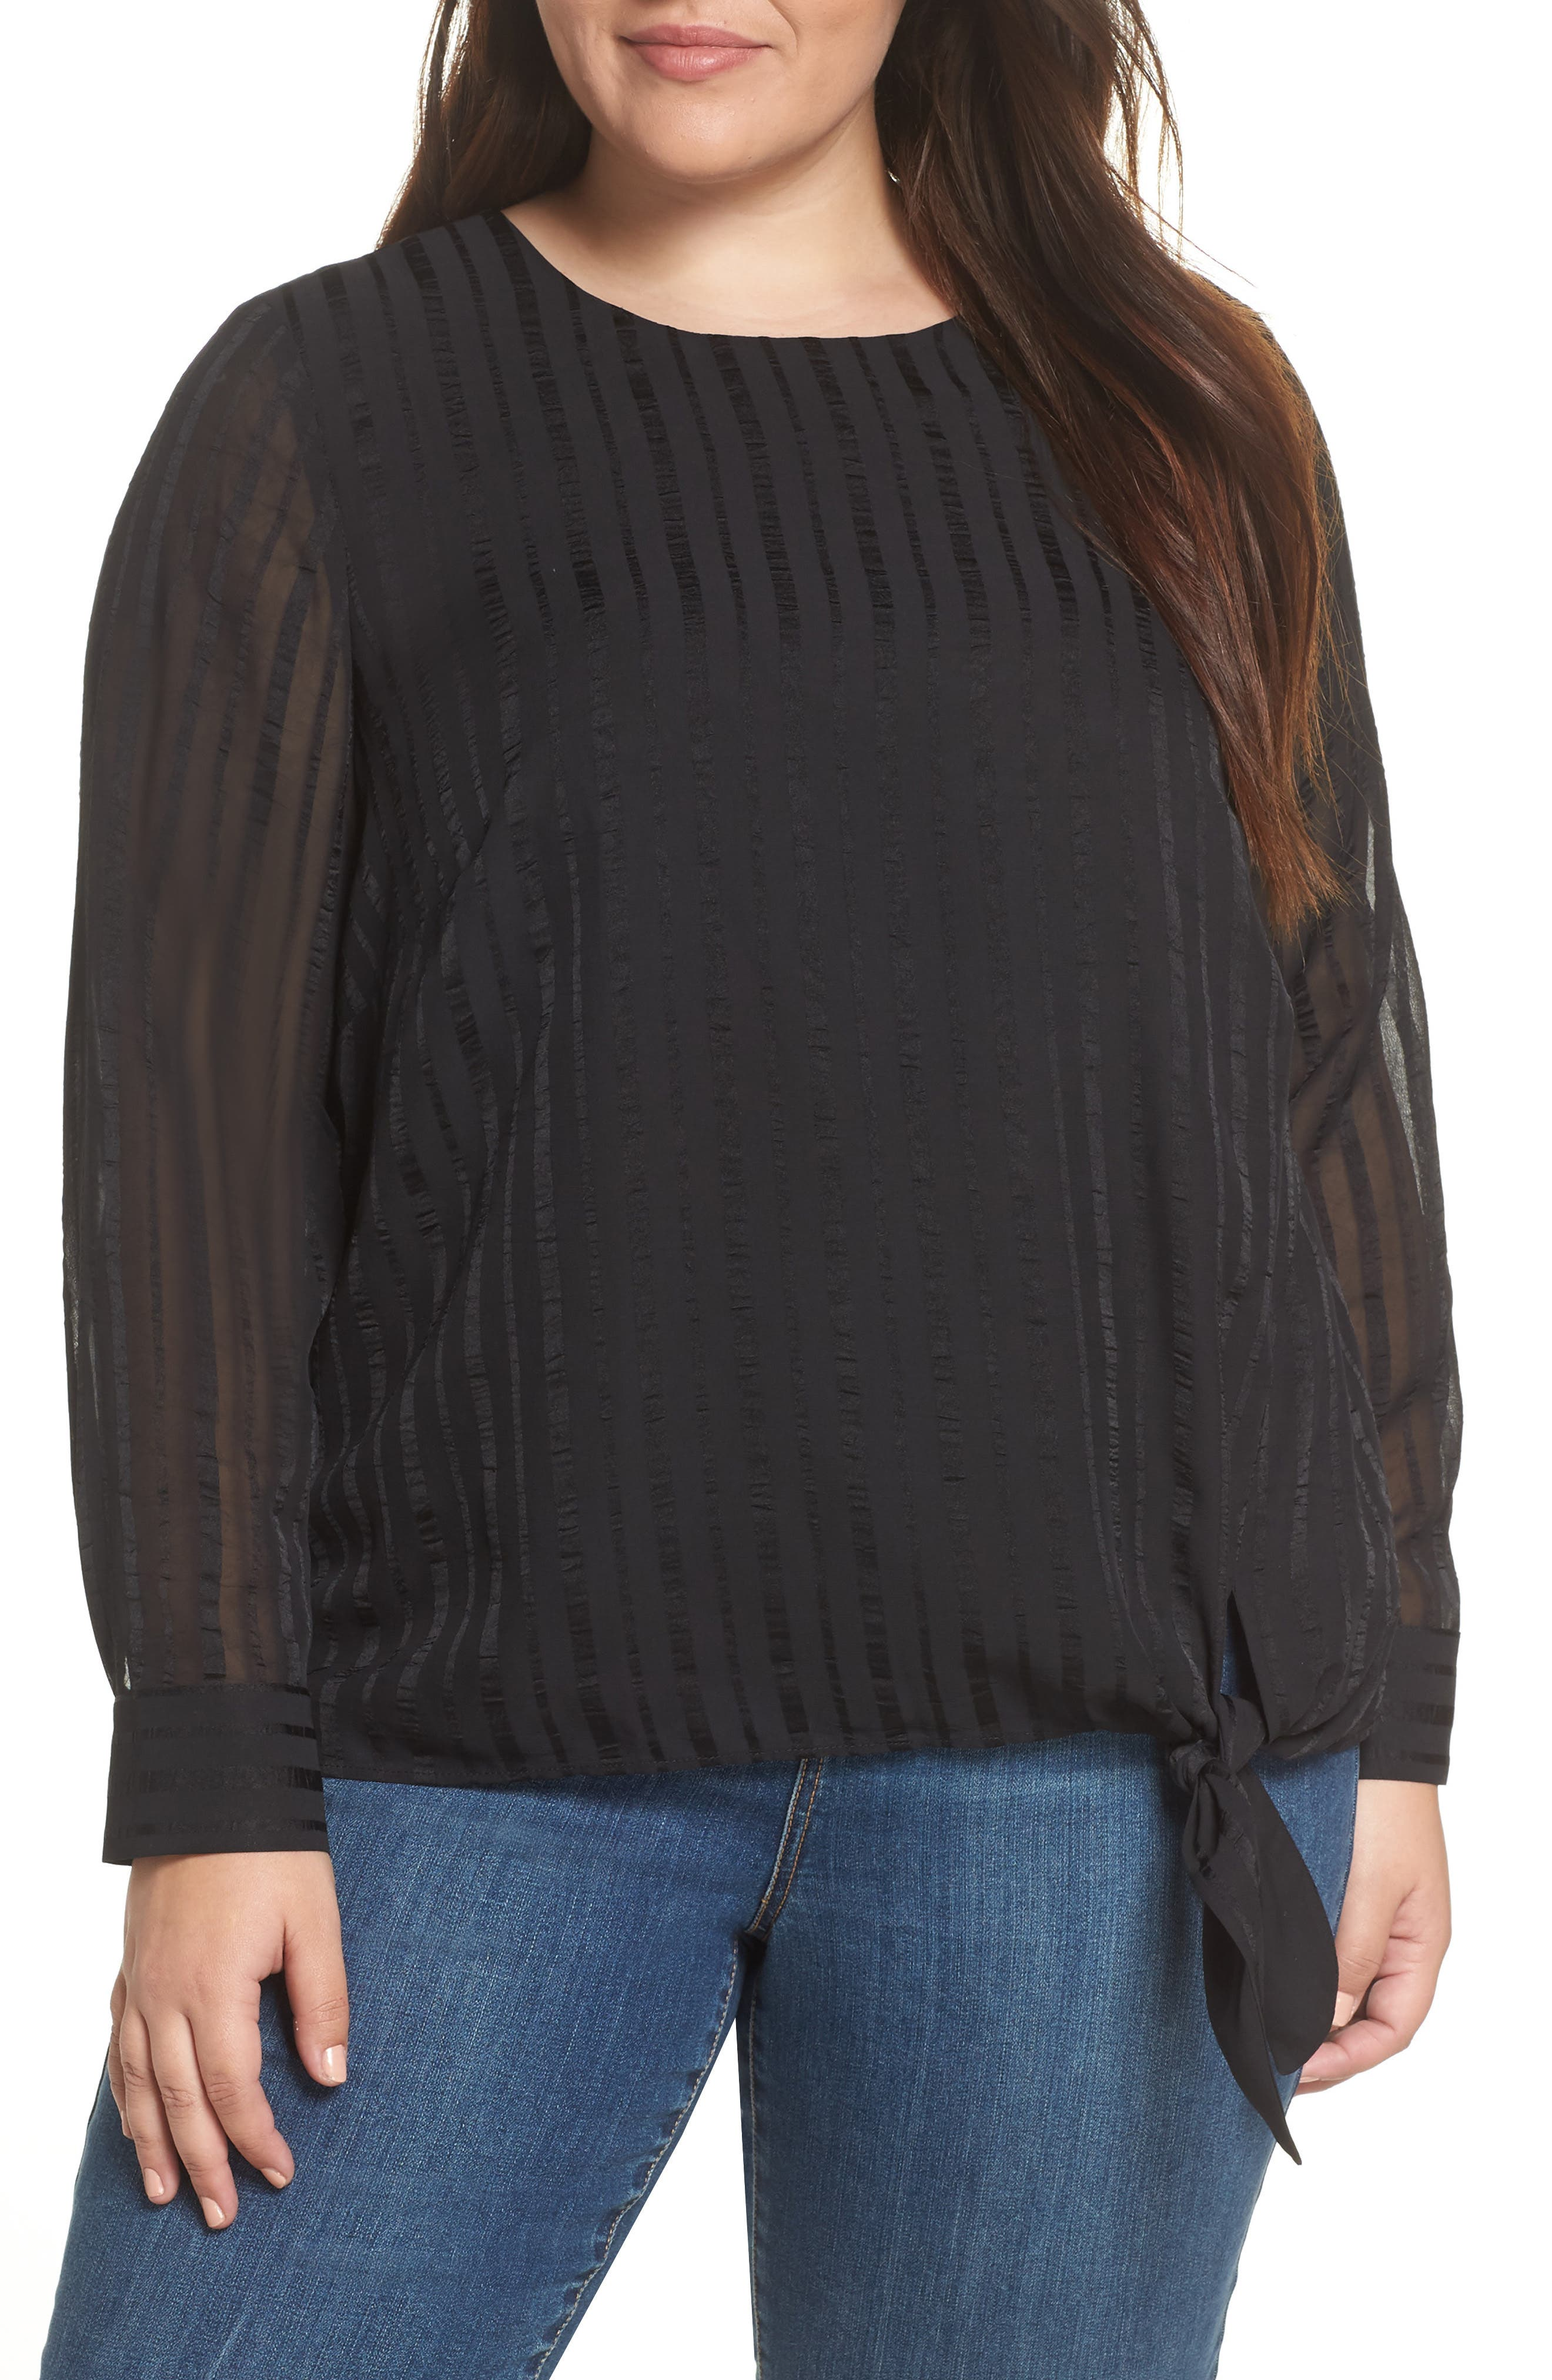 &.LAYERED Side Tie Shadow Stripe Top, Main, color, BLACK